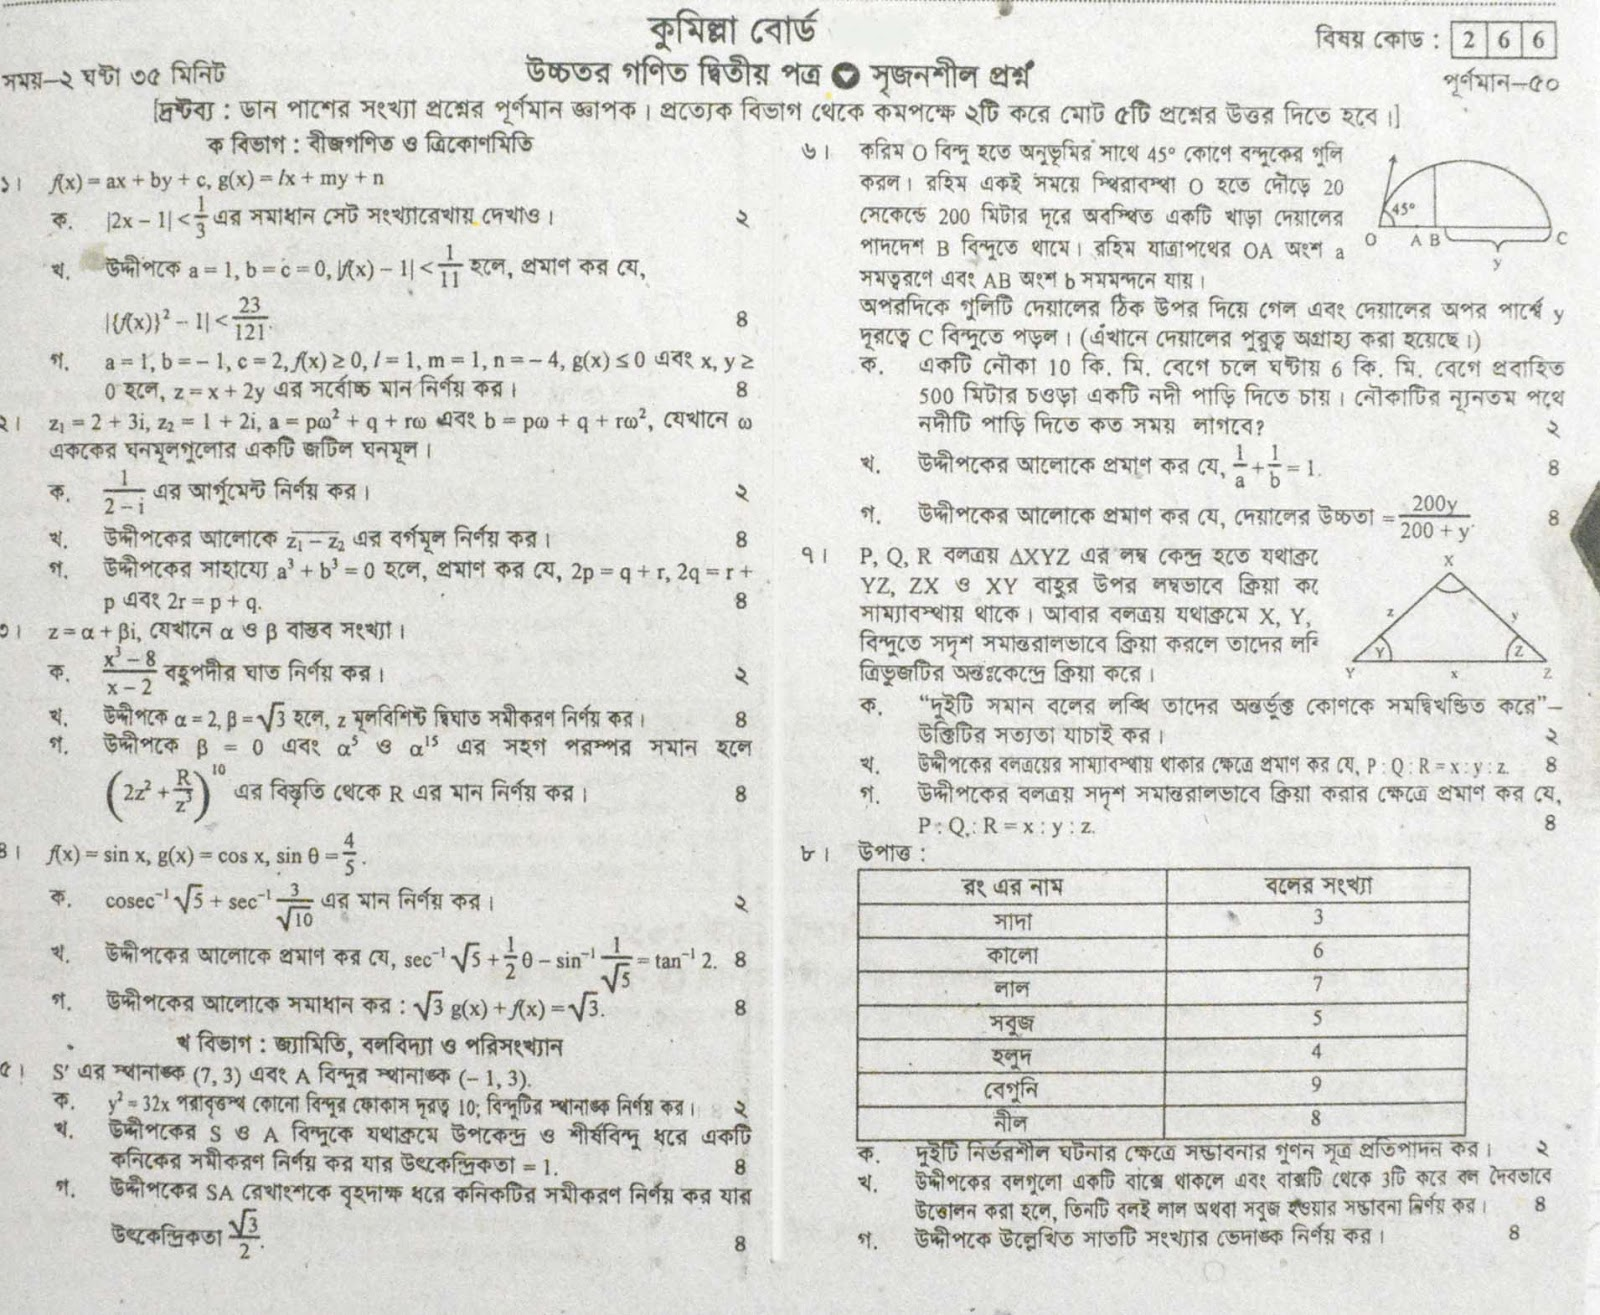 hsc Mathematics 2nd Paper suggestion, exam question paper, model question, mcq question, question pattern, preparation for dhaka board, all boards